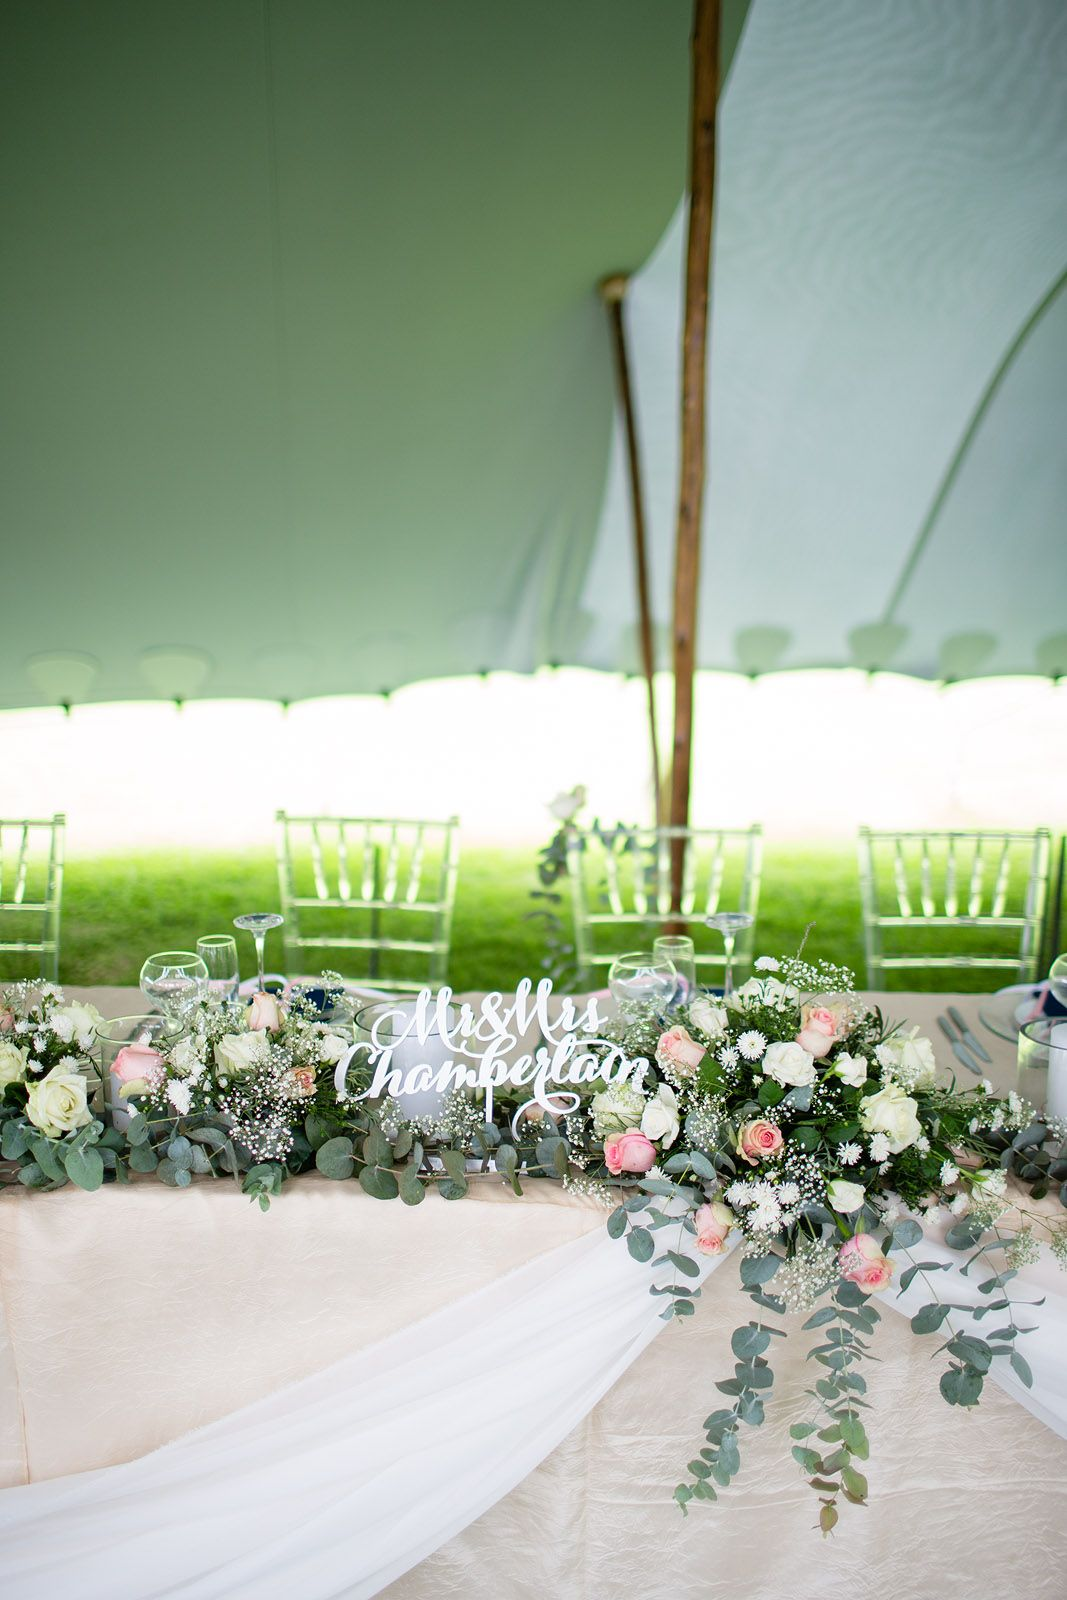 Head table decoration with flowers and candles at our wedding in brllopet 7 tips kring dekoration tess montgomery metro mode junglespirit Choice Image